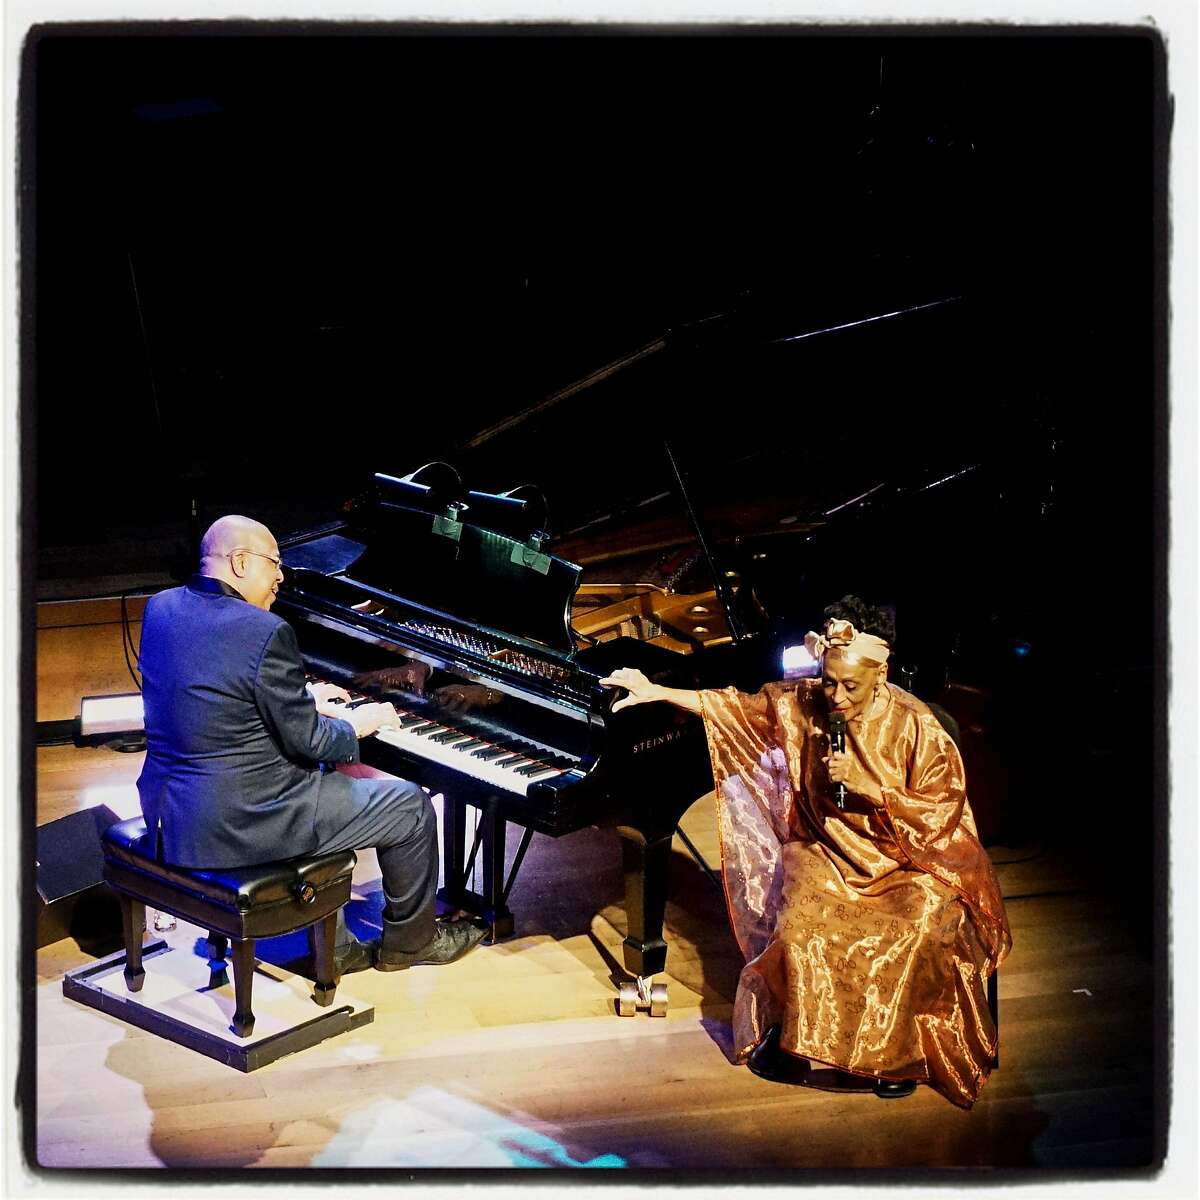 Cuban music legends Chucho Valdes (on piano) and Ombra Portuondo starred at SFJazz gala. Jan. 31, 2019.